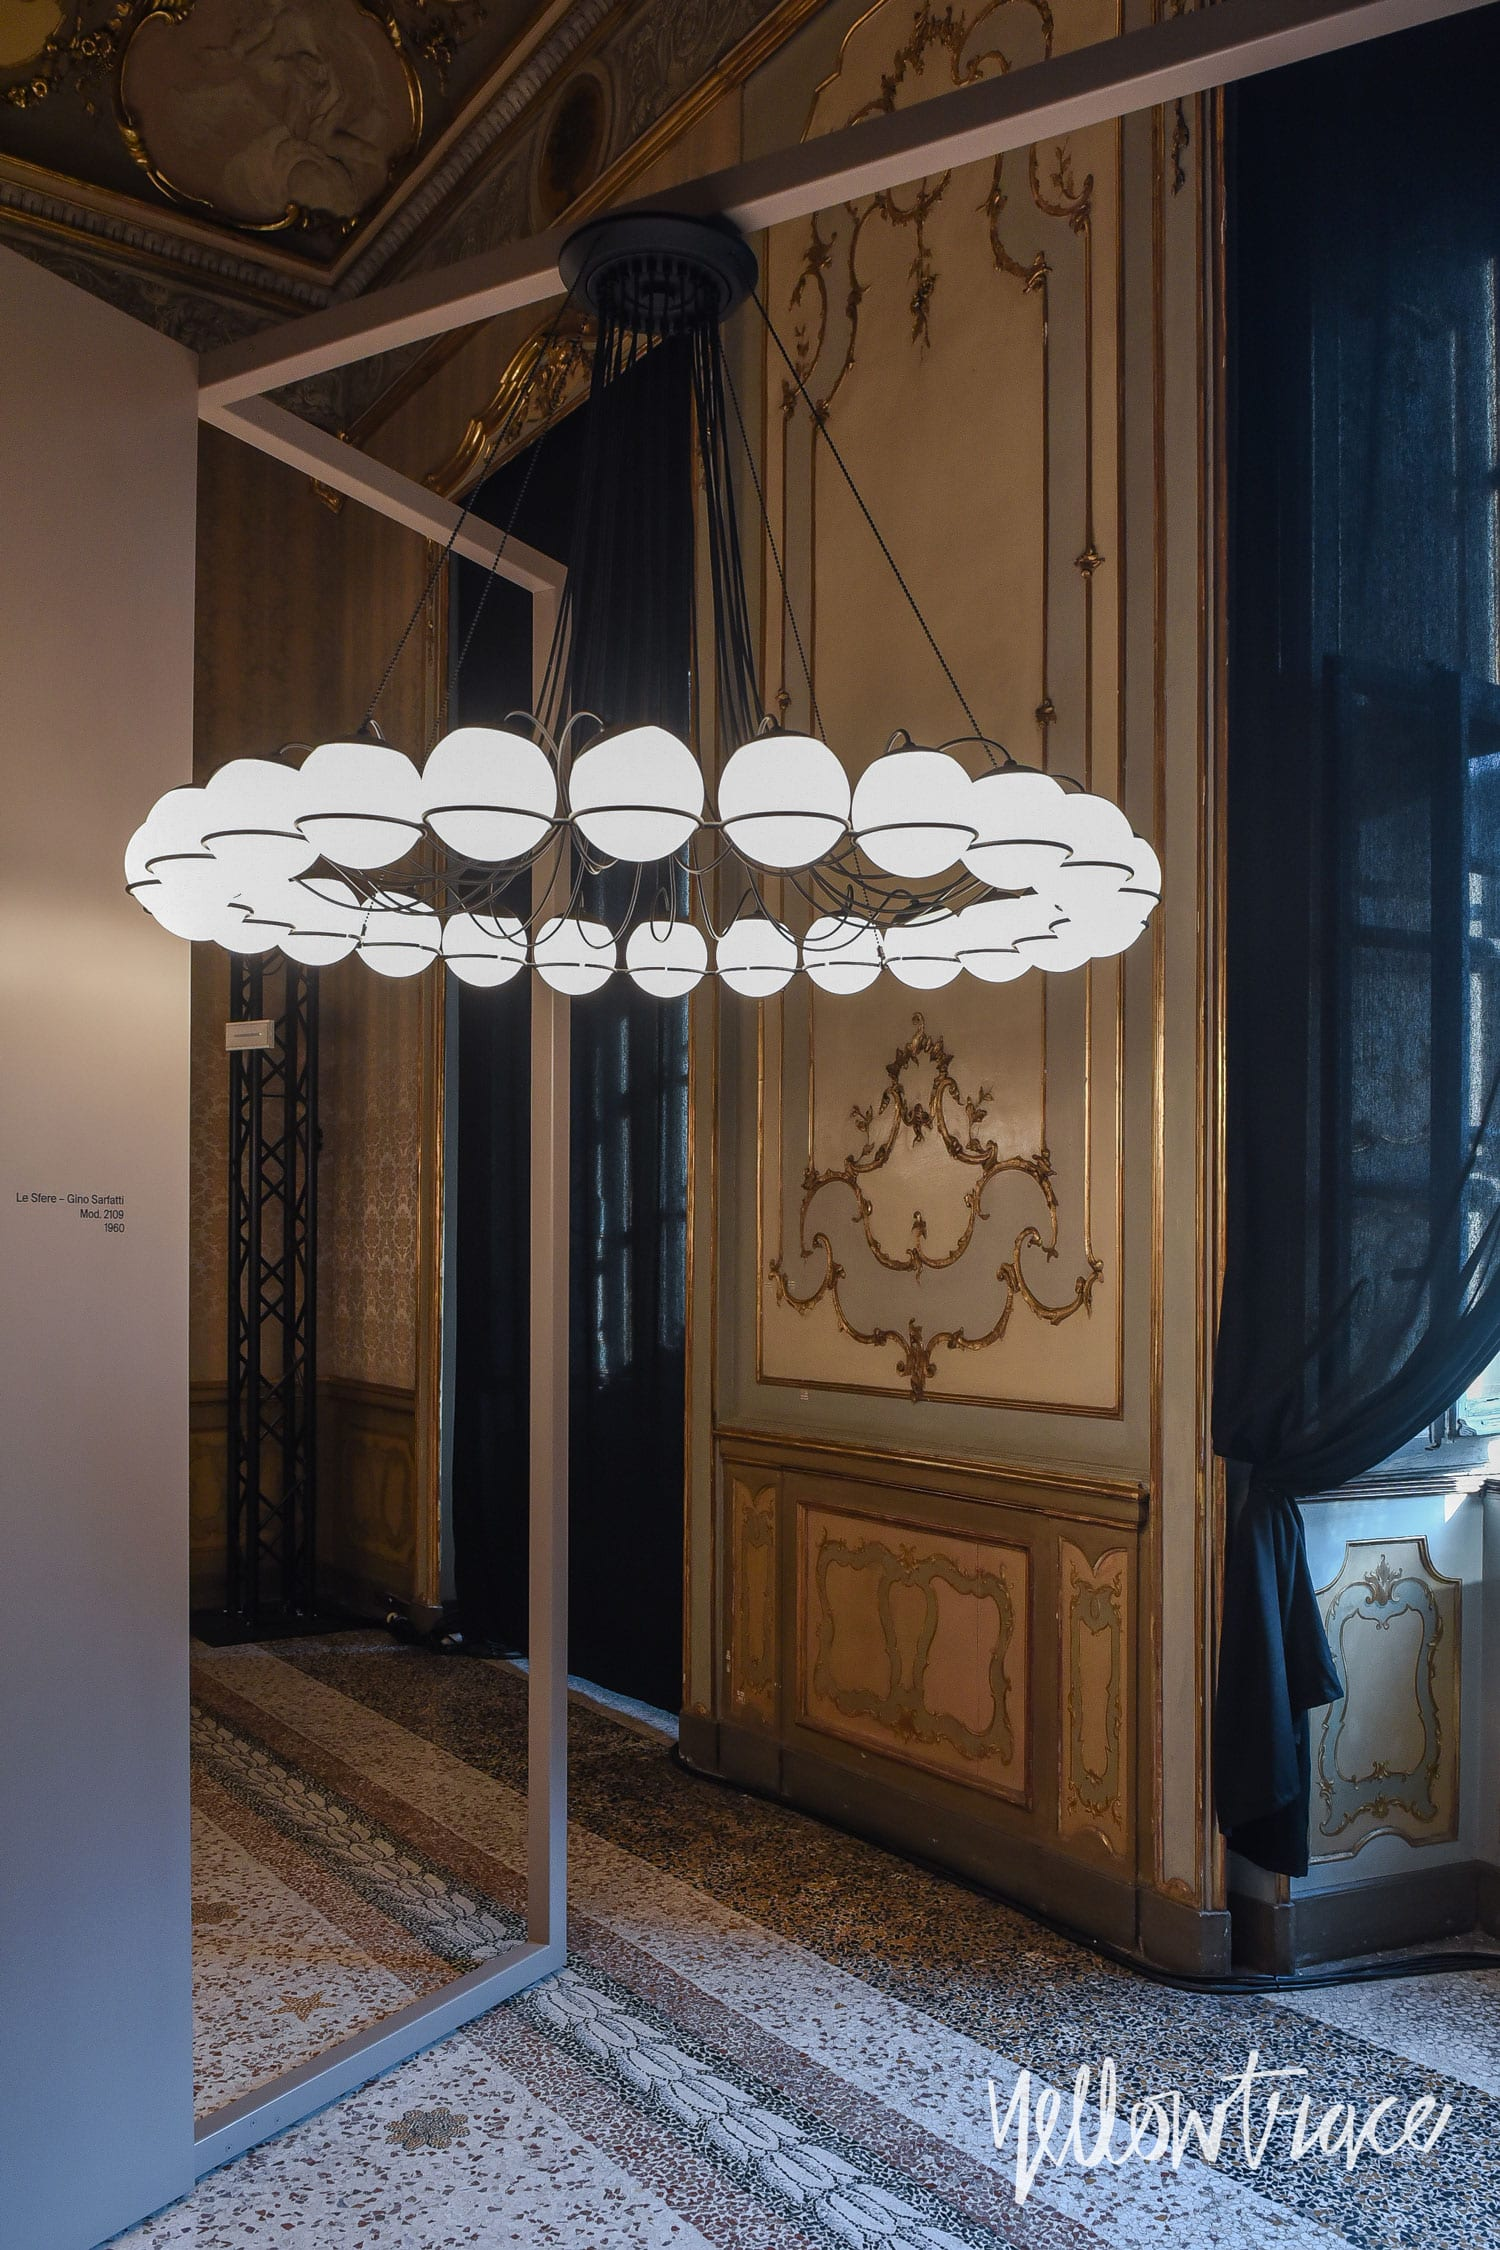 Milan Design Week 2018 Highlights, Le Sfere di Gino Sarfatti exhibition by Astep at Palazzo Litta. Photo © Nick Hughes | #Milantrace2018